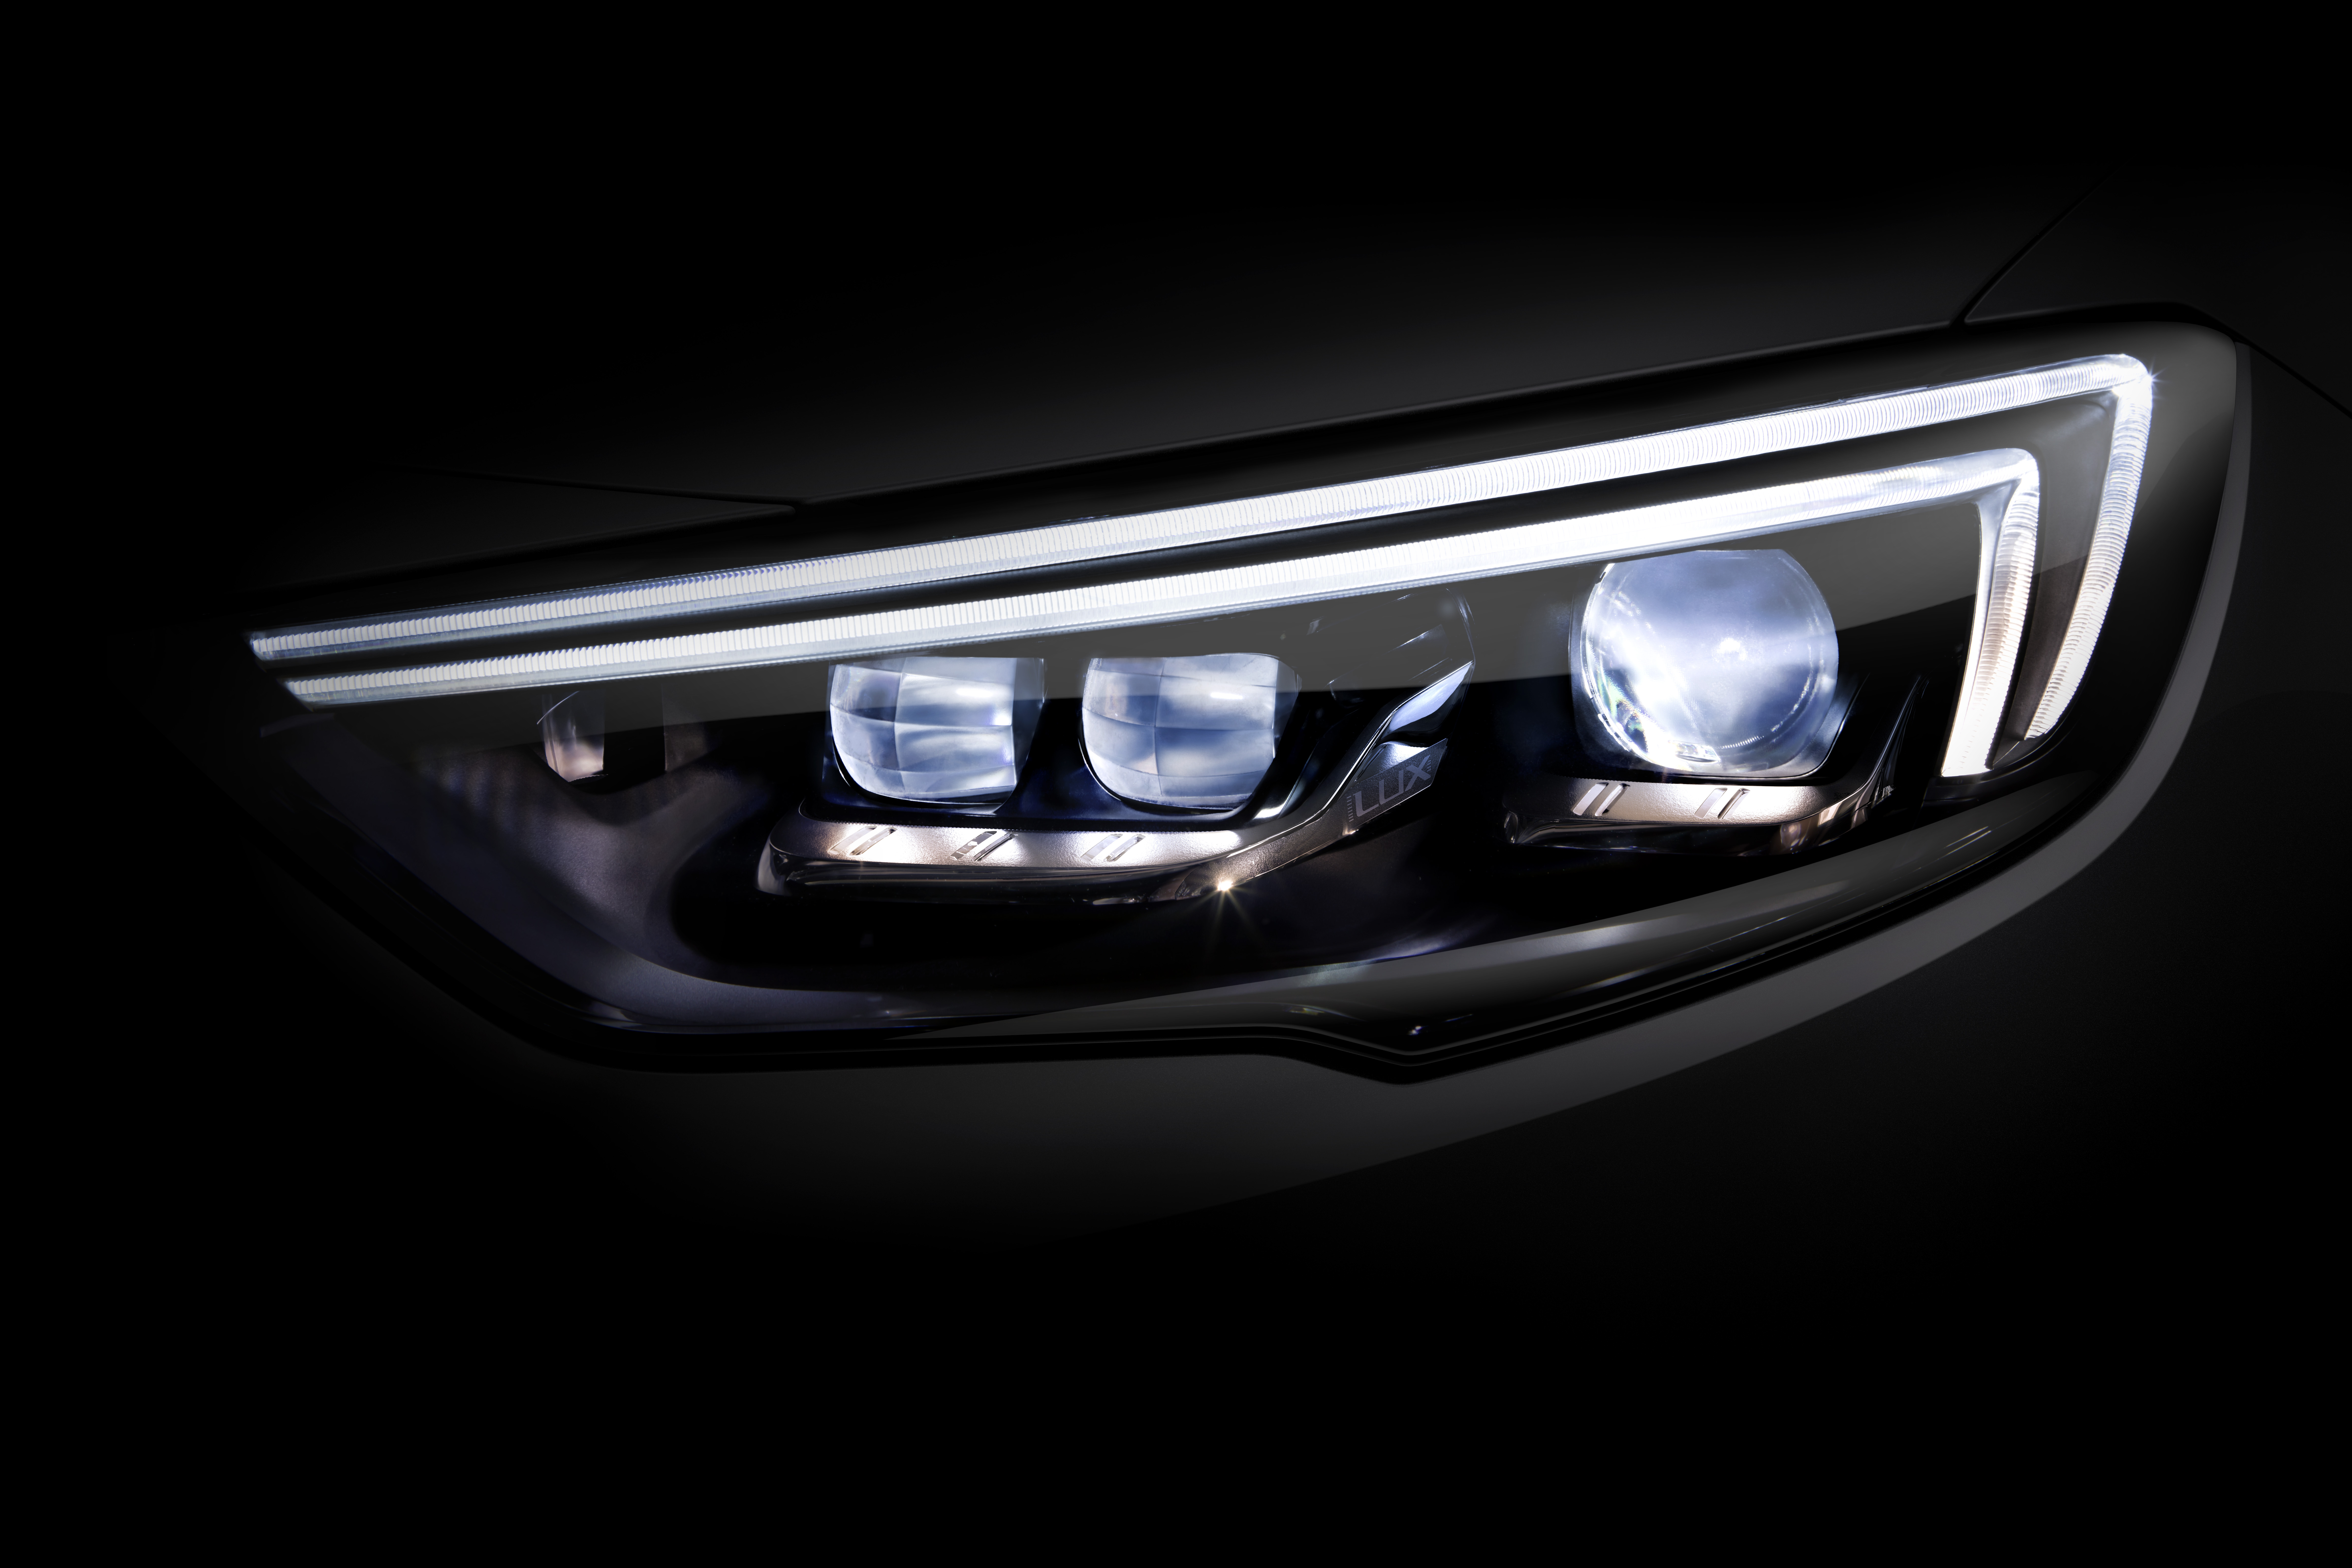 LED daytime running lights give a distinctive look